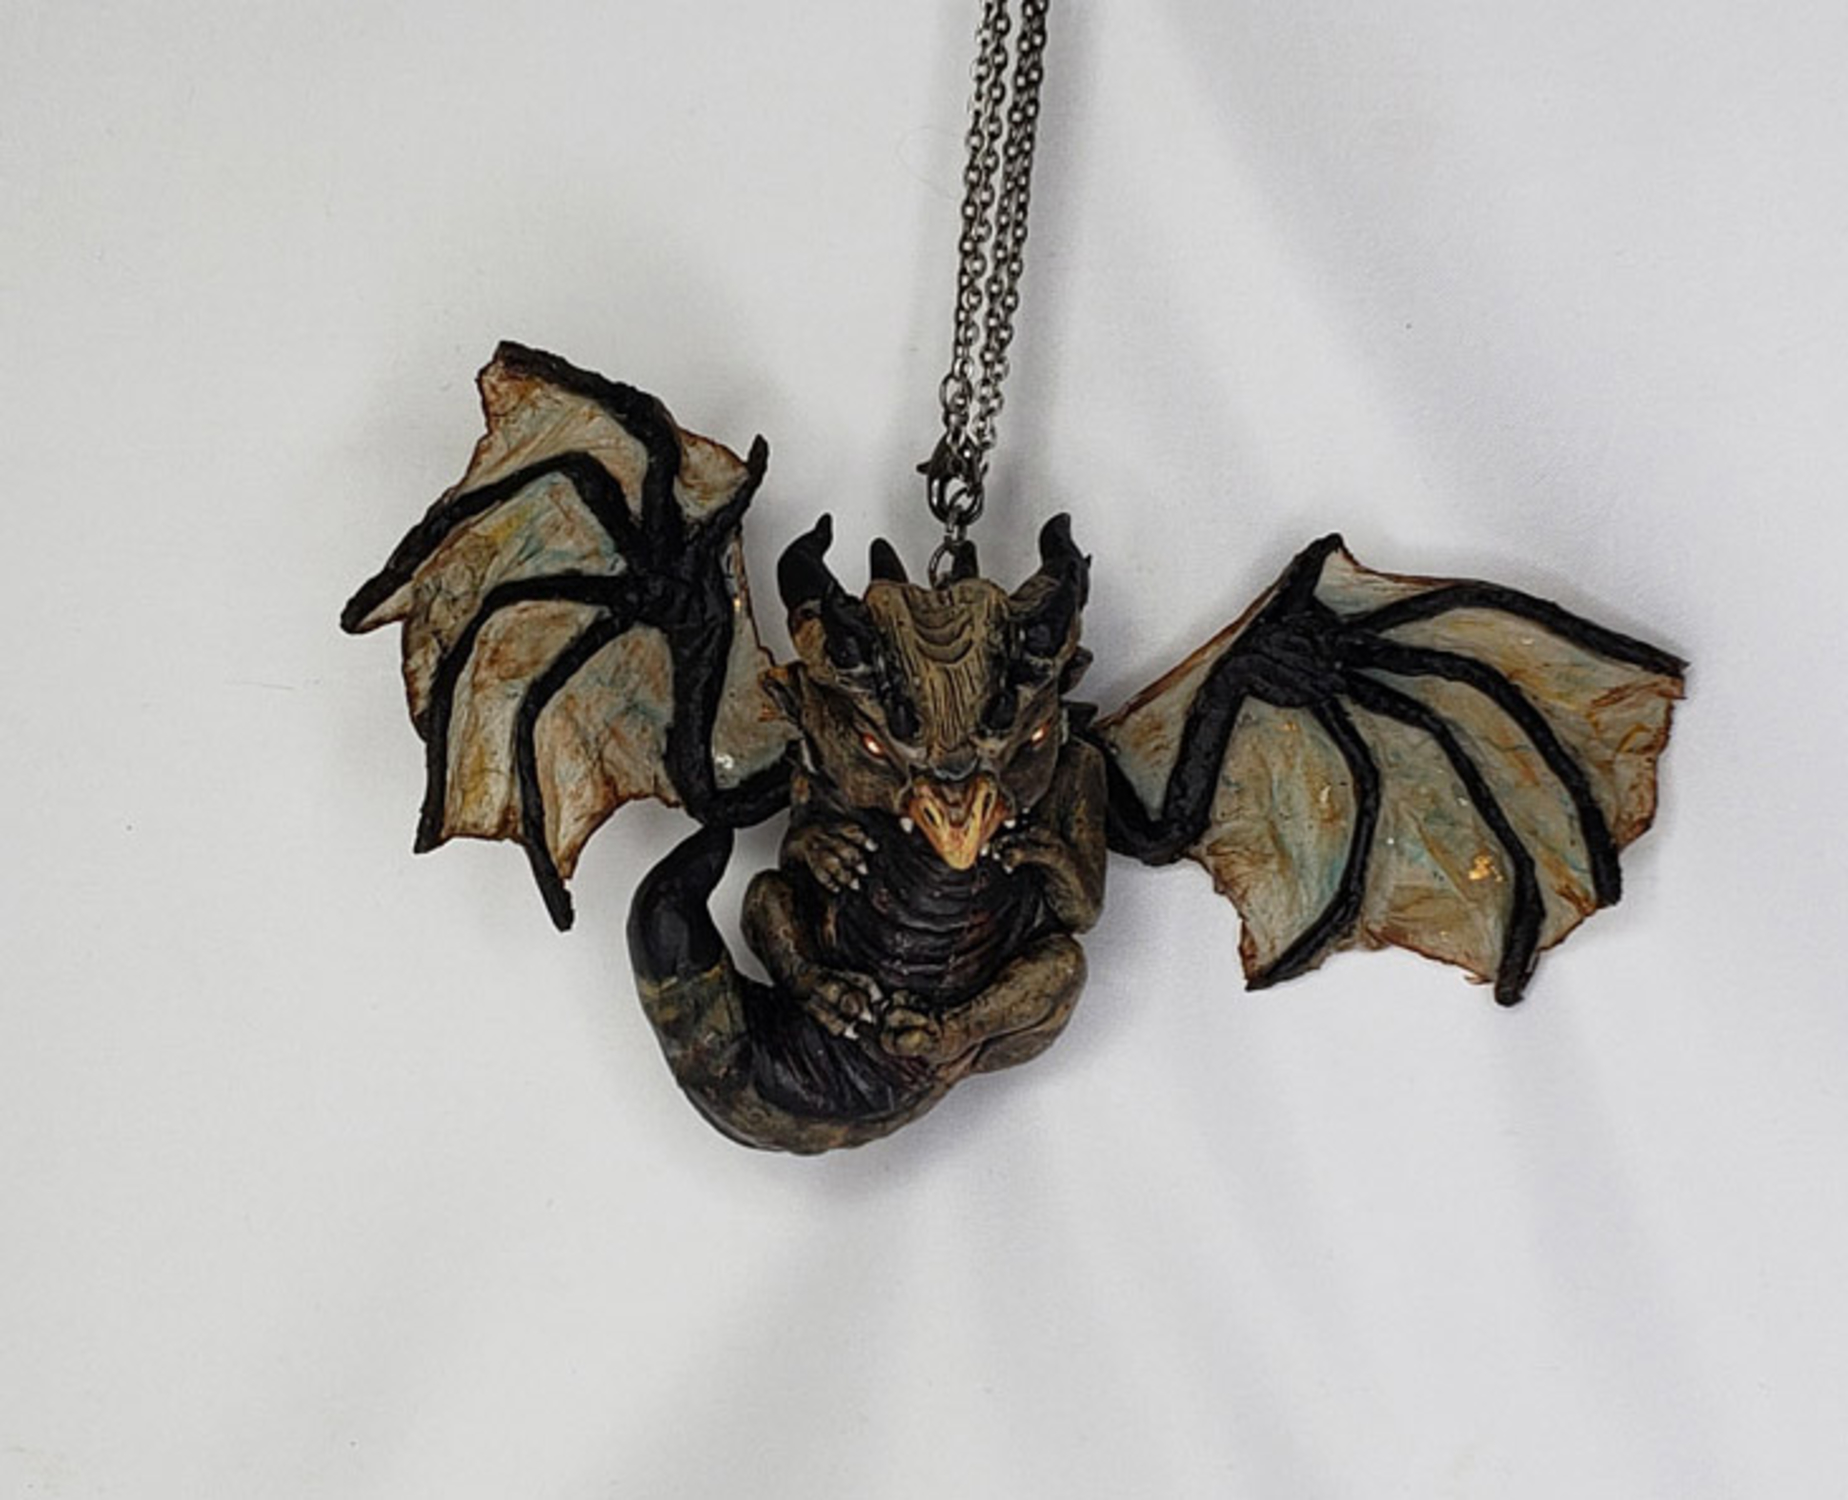 Batty - Bat Winged Dragon Artwork by Lisa Sprite Hansen